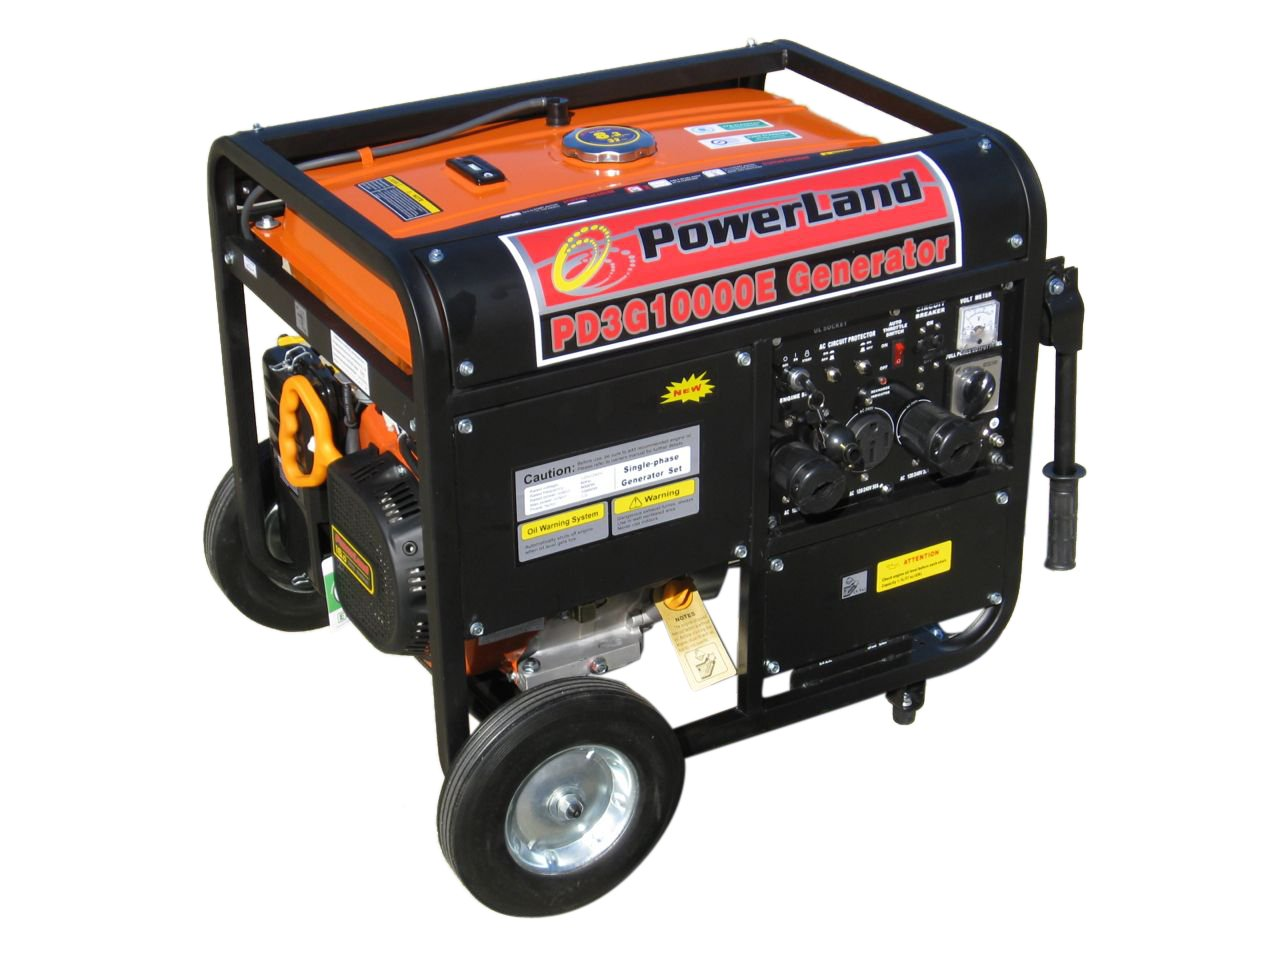 Powerland PD3G10000E review